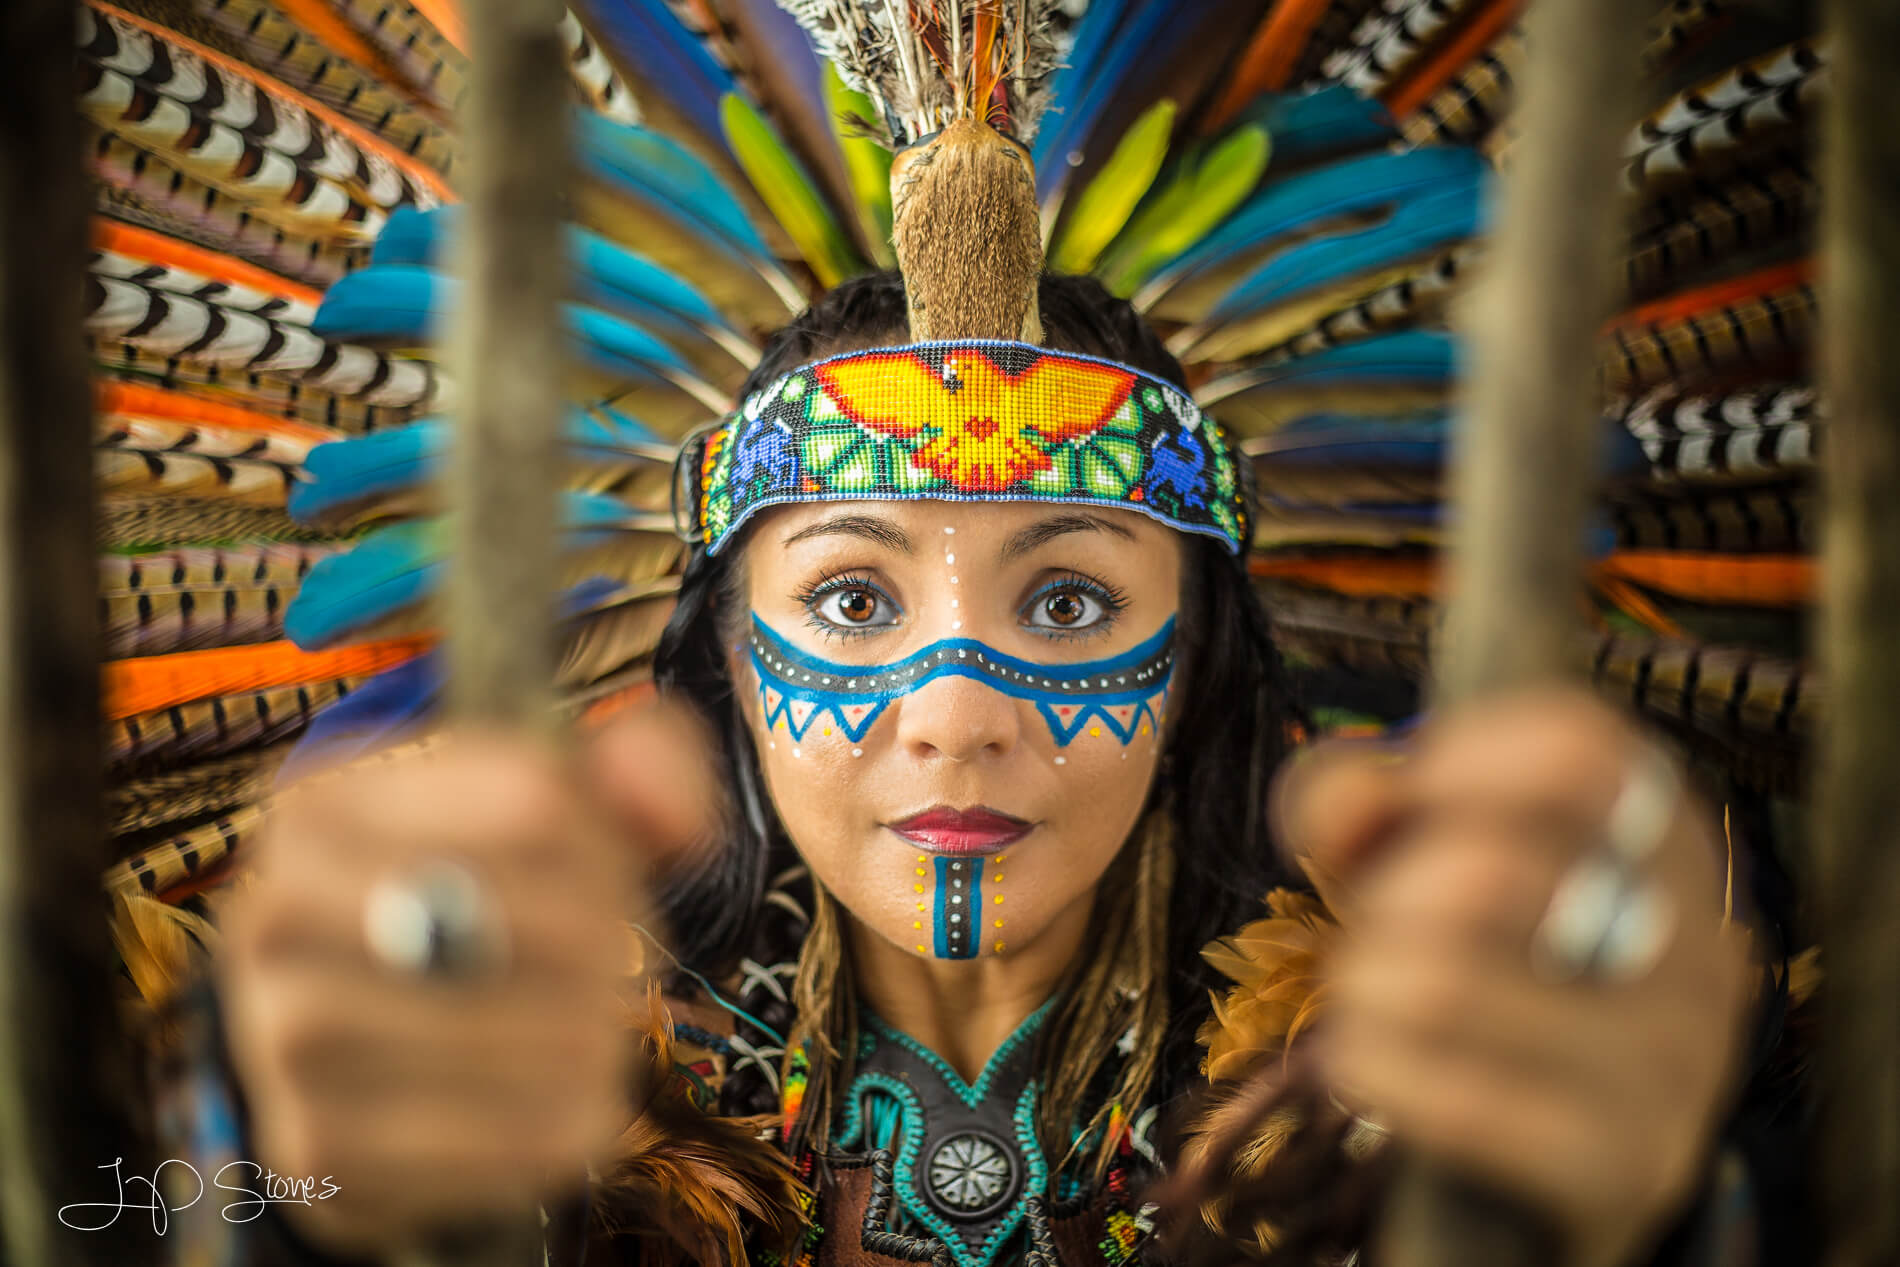 an analysis of the aztec culture in the aztec nation Learn about working at aztec analysis (wga) join linkedin today for free see who you know at aztec analysis (wga), leverage your professional network, and get hired.